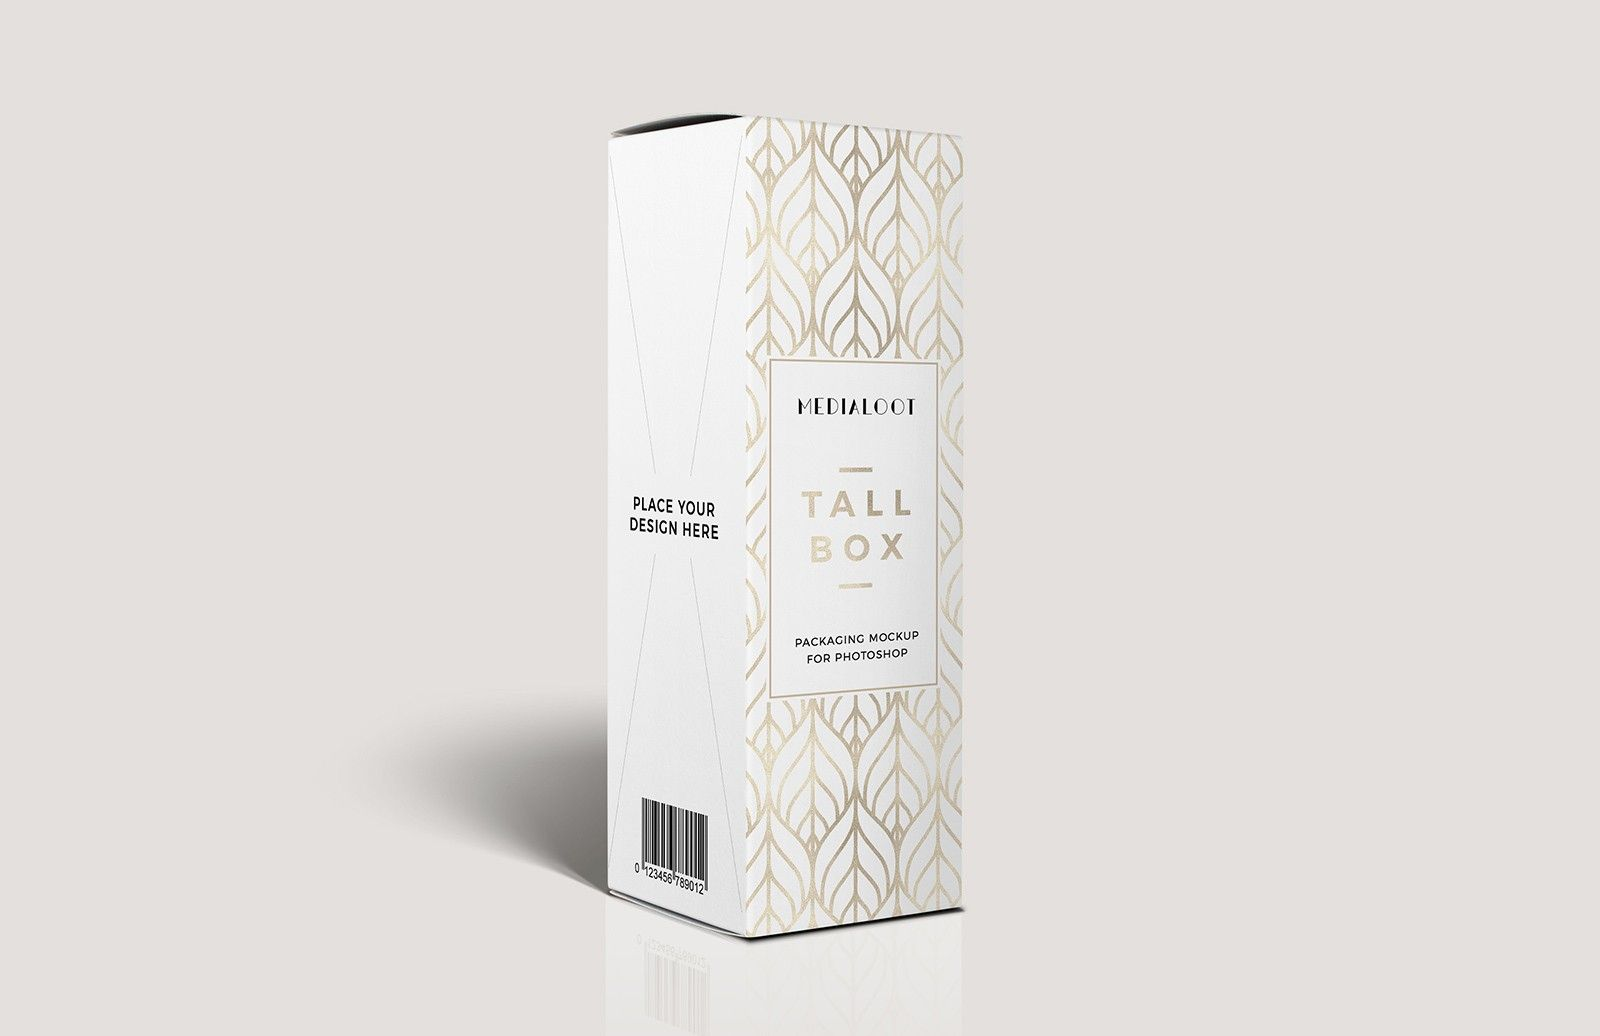 Download Tall Box Packaging Mockup For Photoshop Packaging Mockup Cosmetic Packaging Design Box Packaging